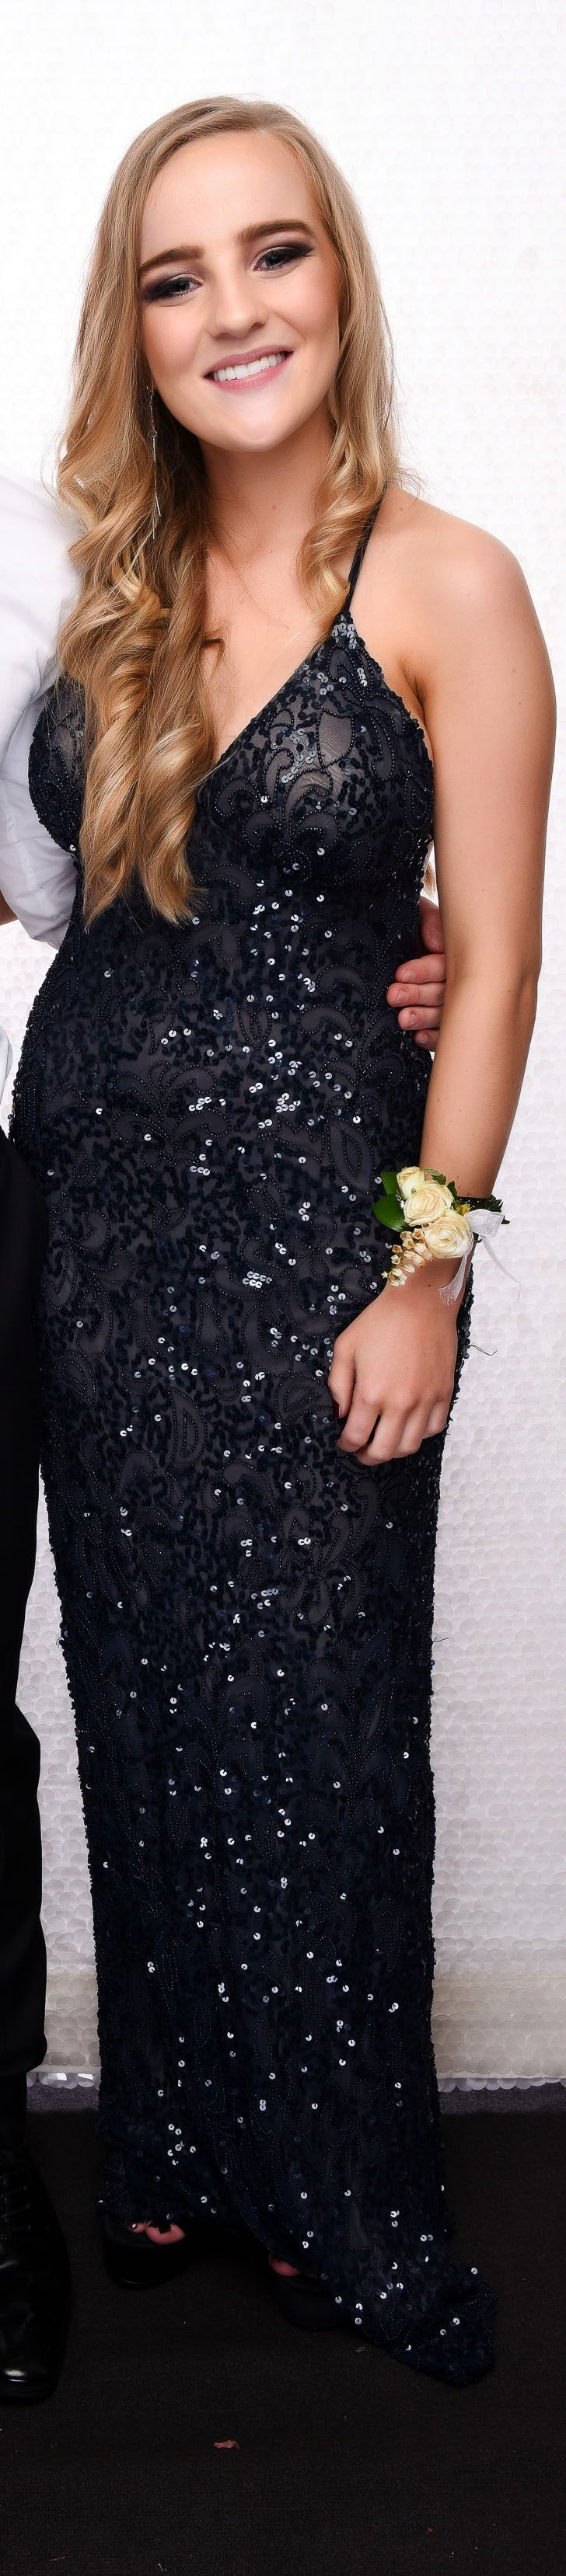 St Cuth's School Ball 2017. Love all the detail in this gown!